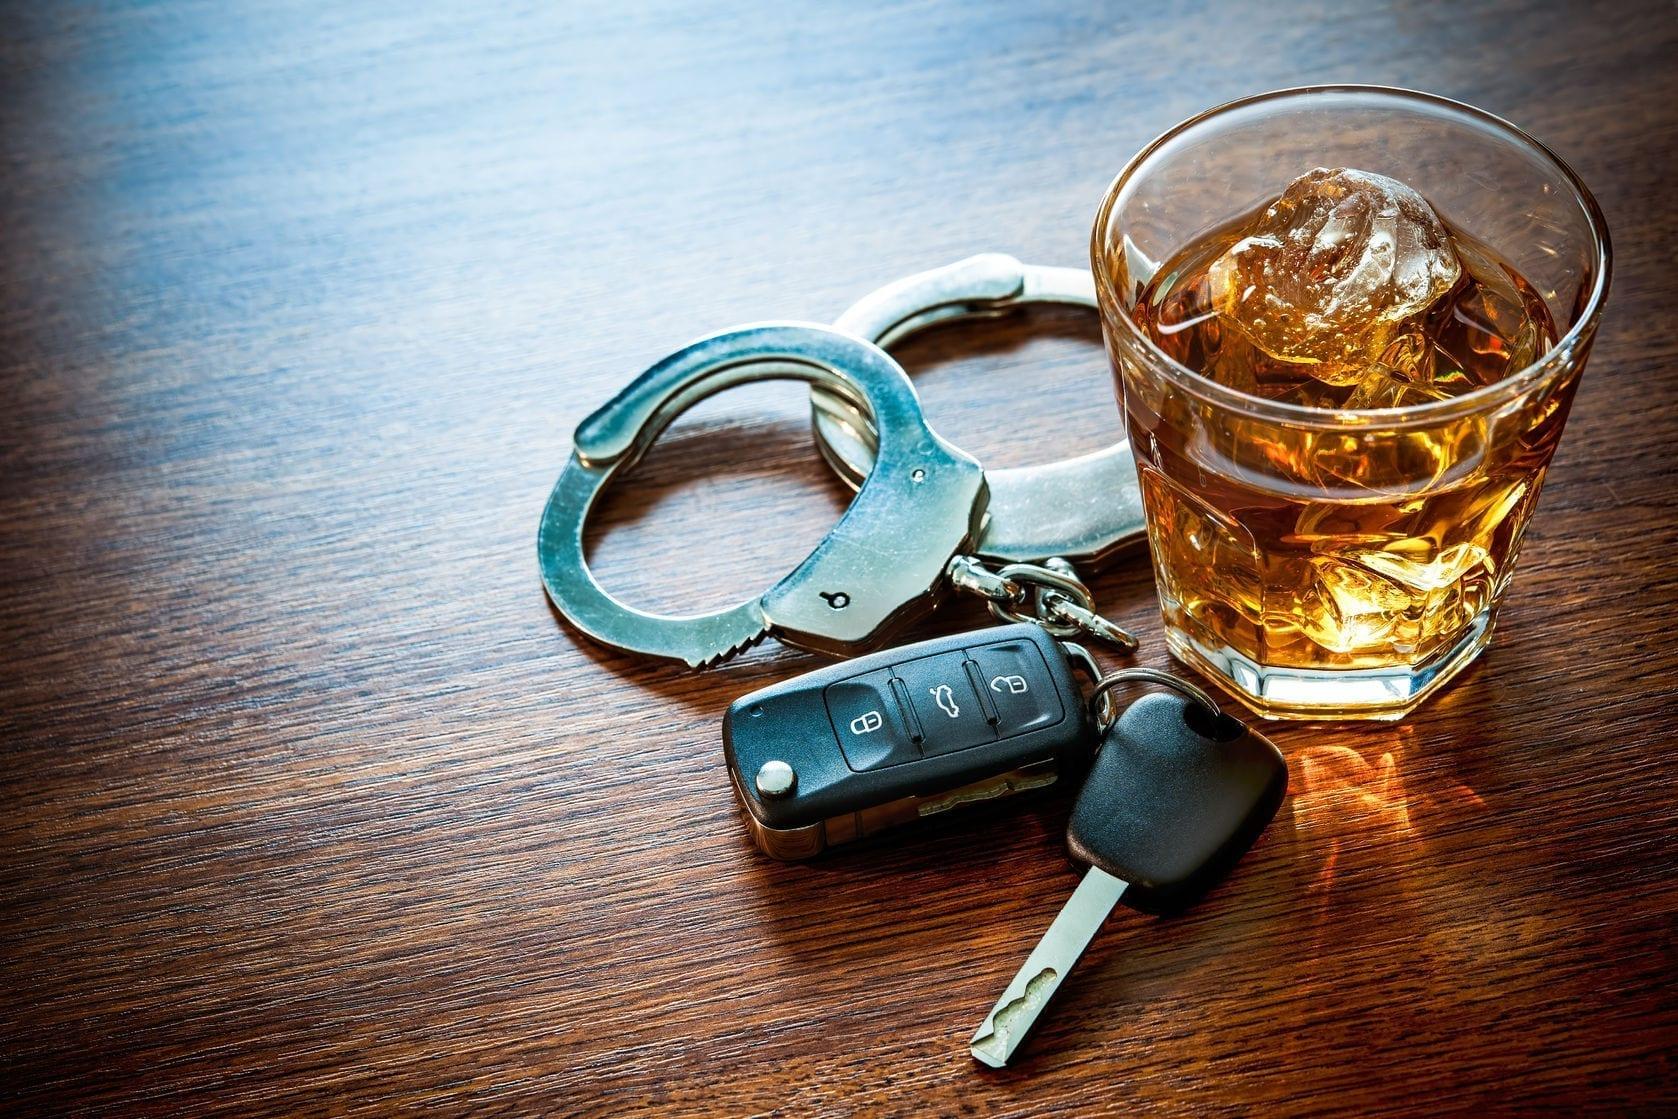 drunk driving OVI DUI drinking under the influence Lorain County Matt Mishak Attorney at Law